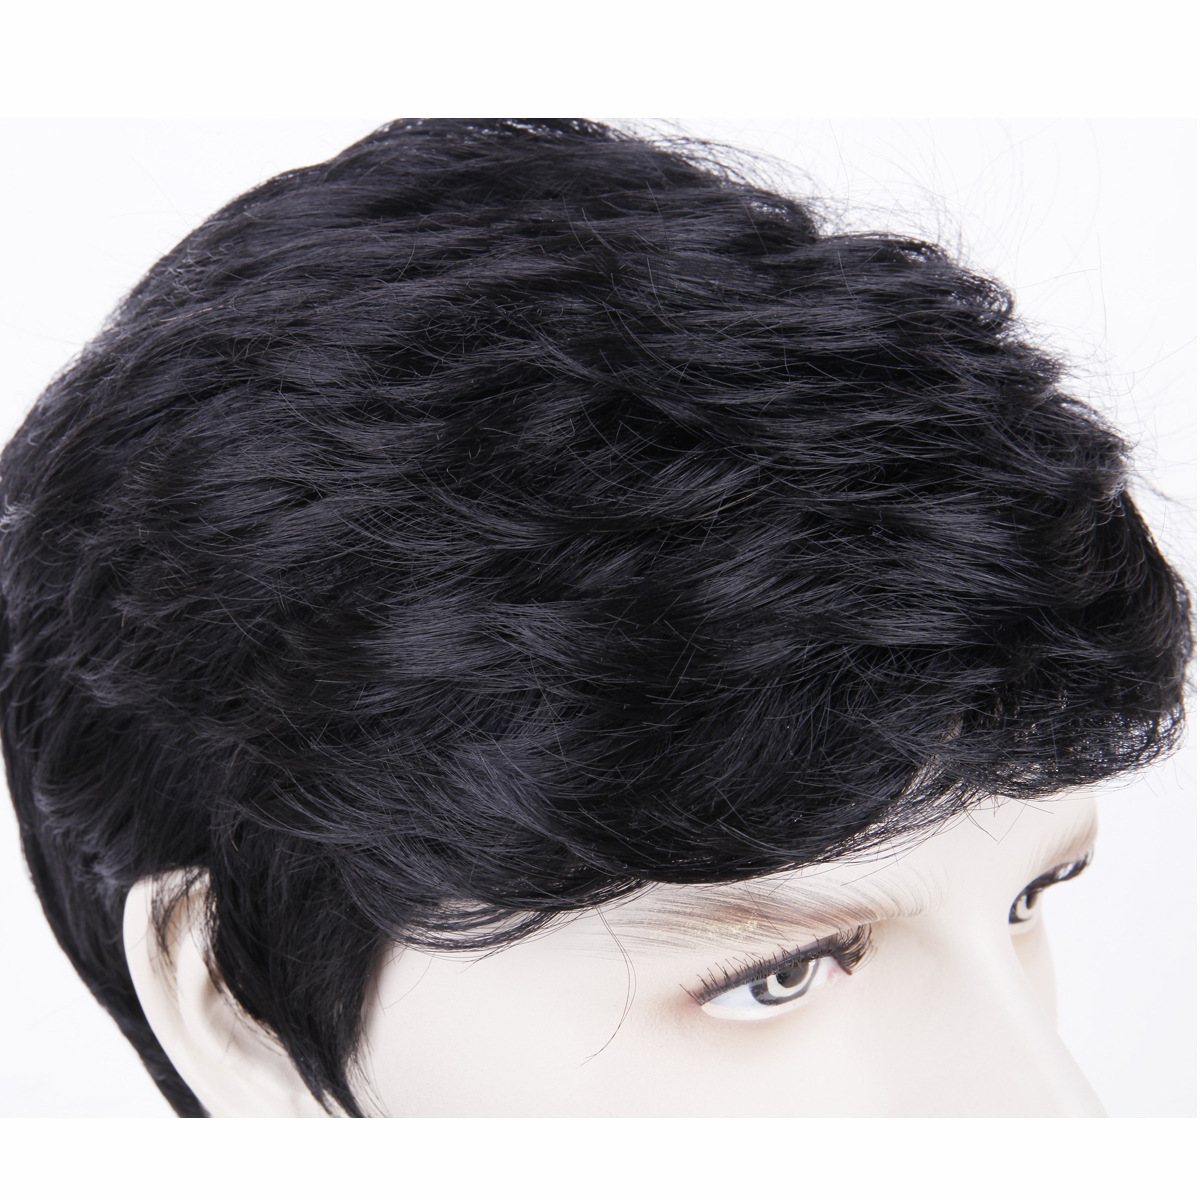 Wig male short hair men's wig black chemical fiber hair cover synthetic wigs men's wig 2